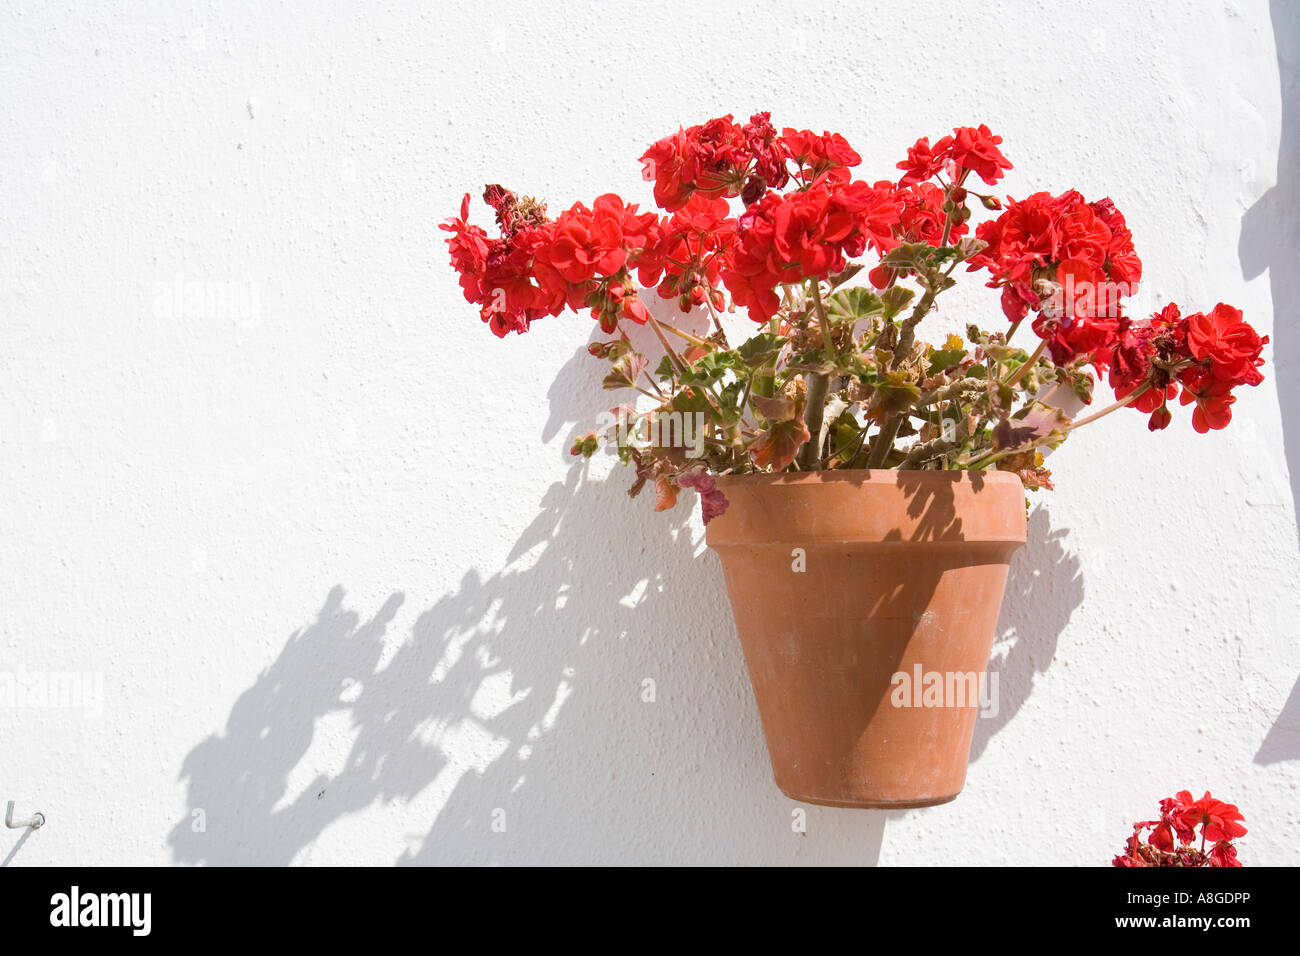 Typical flower pot hanging on andalusian wall tarifa cadiz spain typical flower pot hanging on andalusian wall tarifa cadiz spain izmirmasajfo